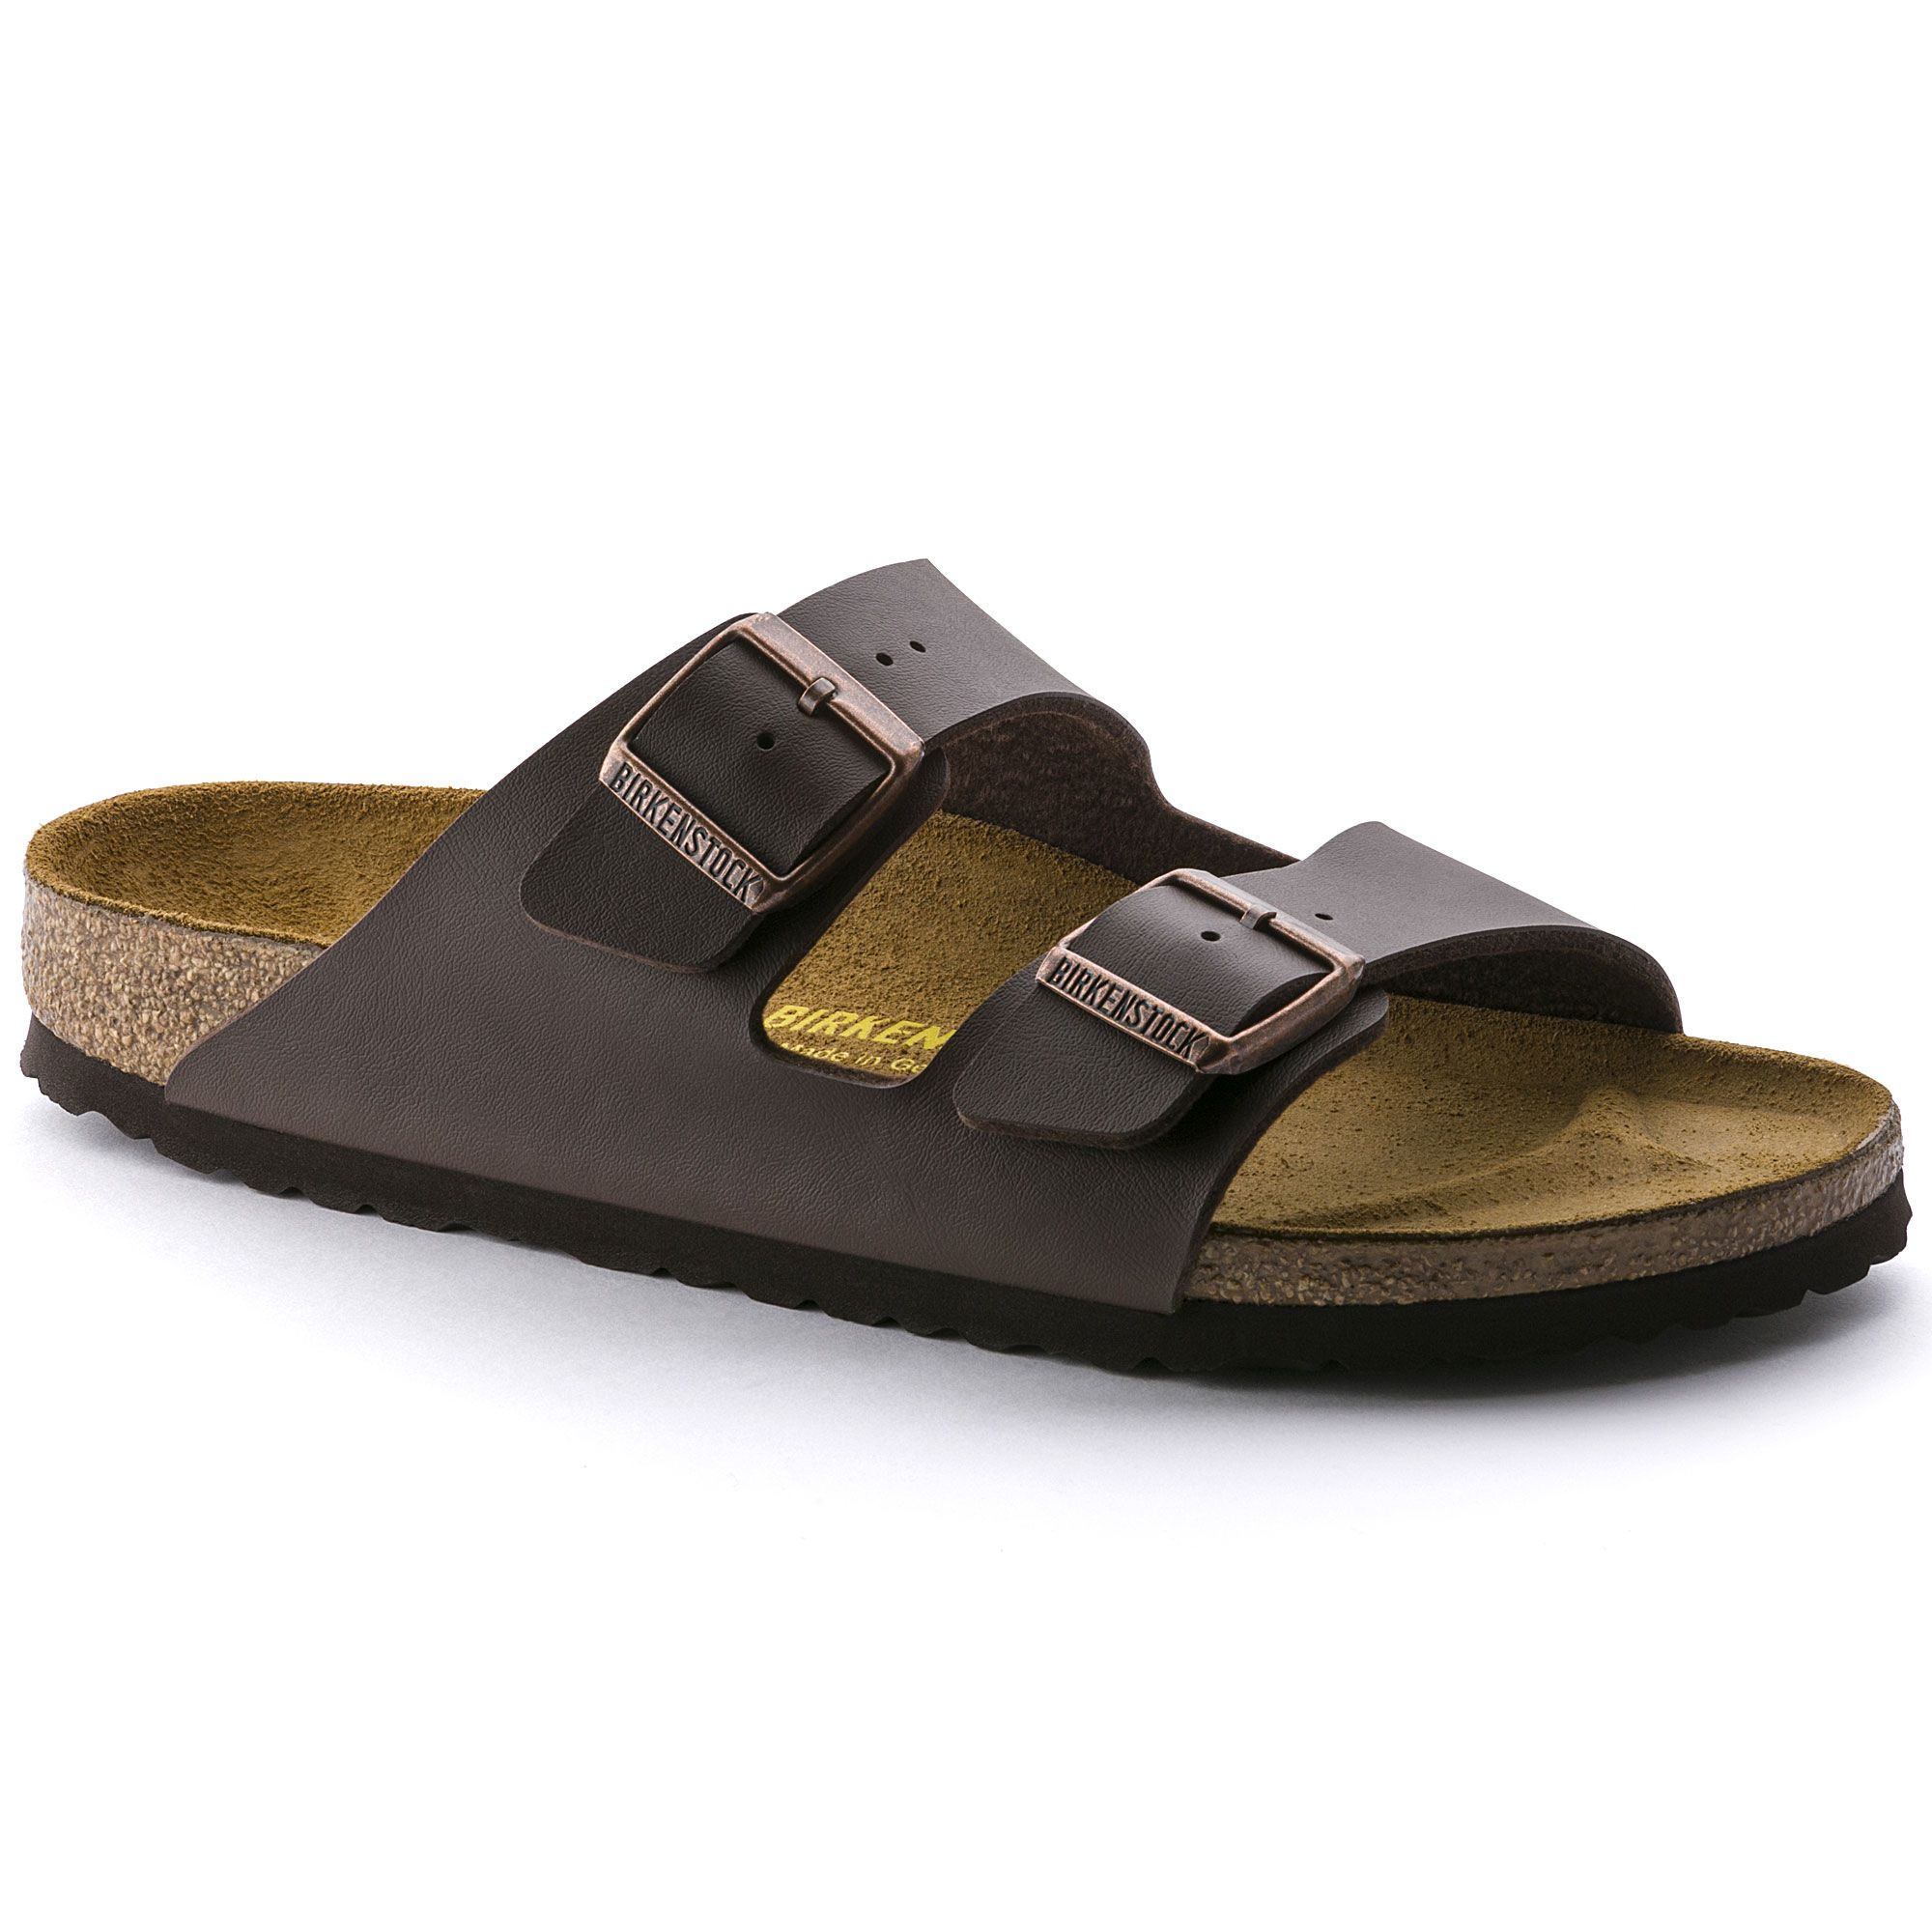 BIRKENSTOCK Arizona Birko-Flor Dark Brown in all sizes ✓ Buy directly from  the manufacturer online ✓ All fashion trends from Birkenstock